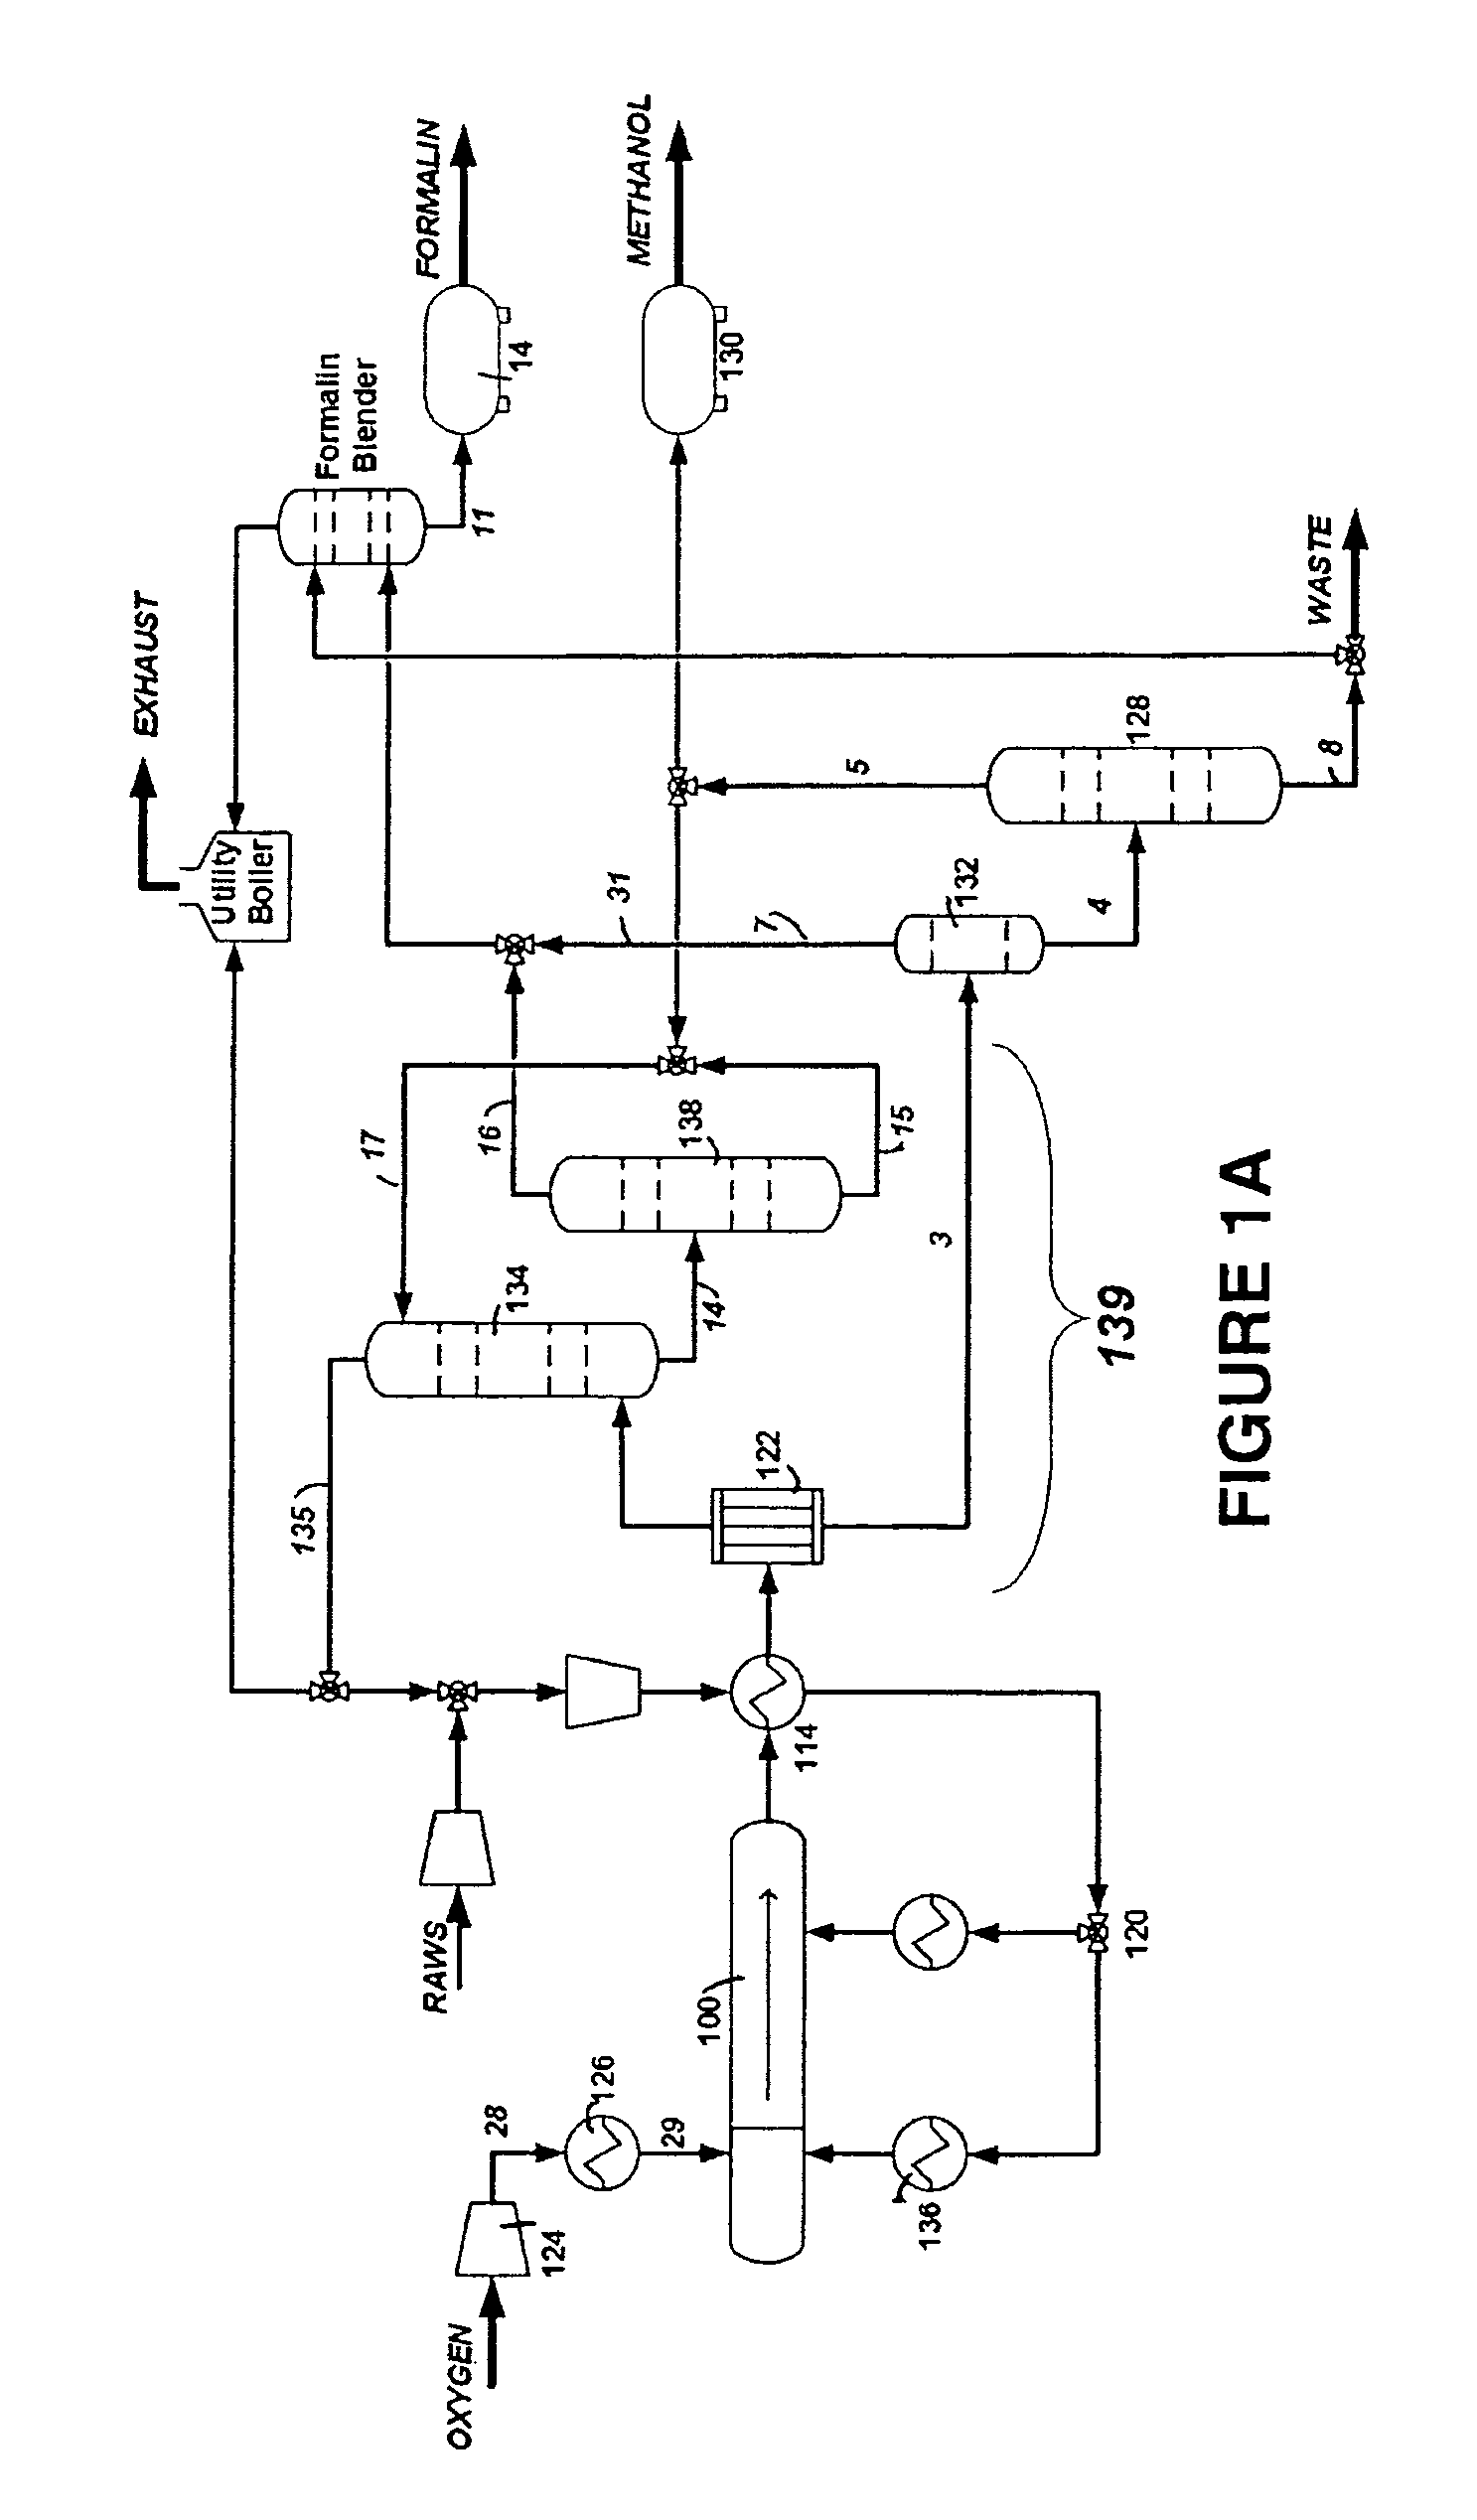 patent us8193254 - method and system for methanol production